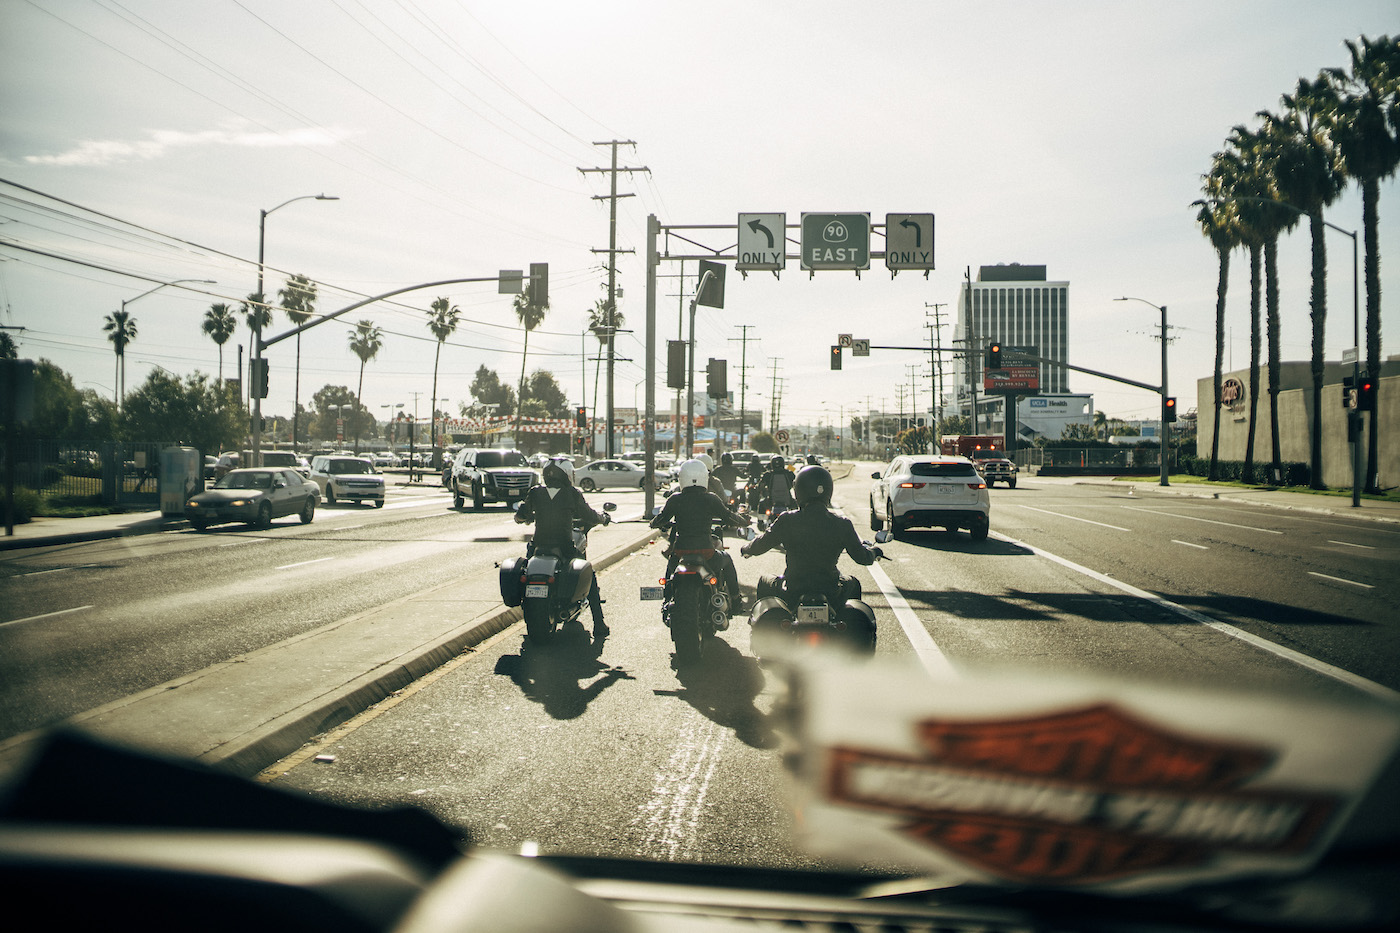 Welcome to LA traffic.